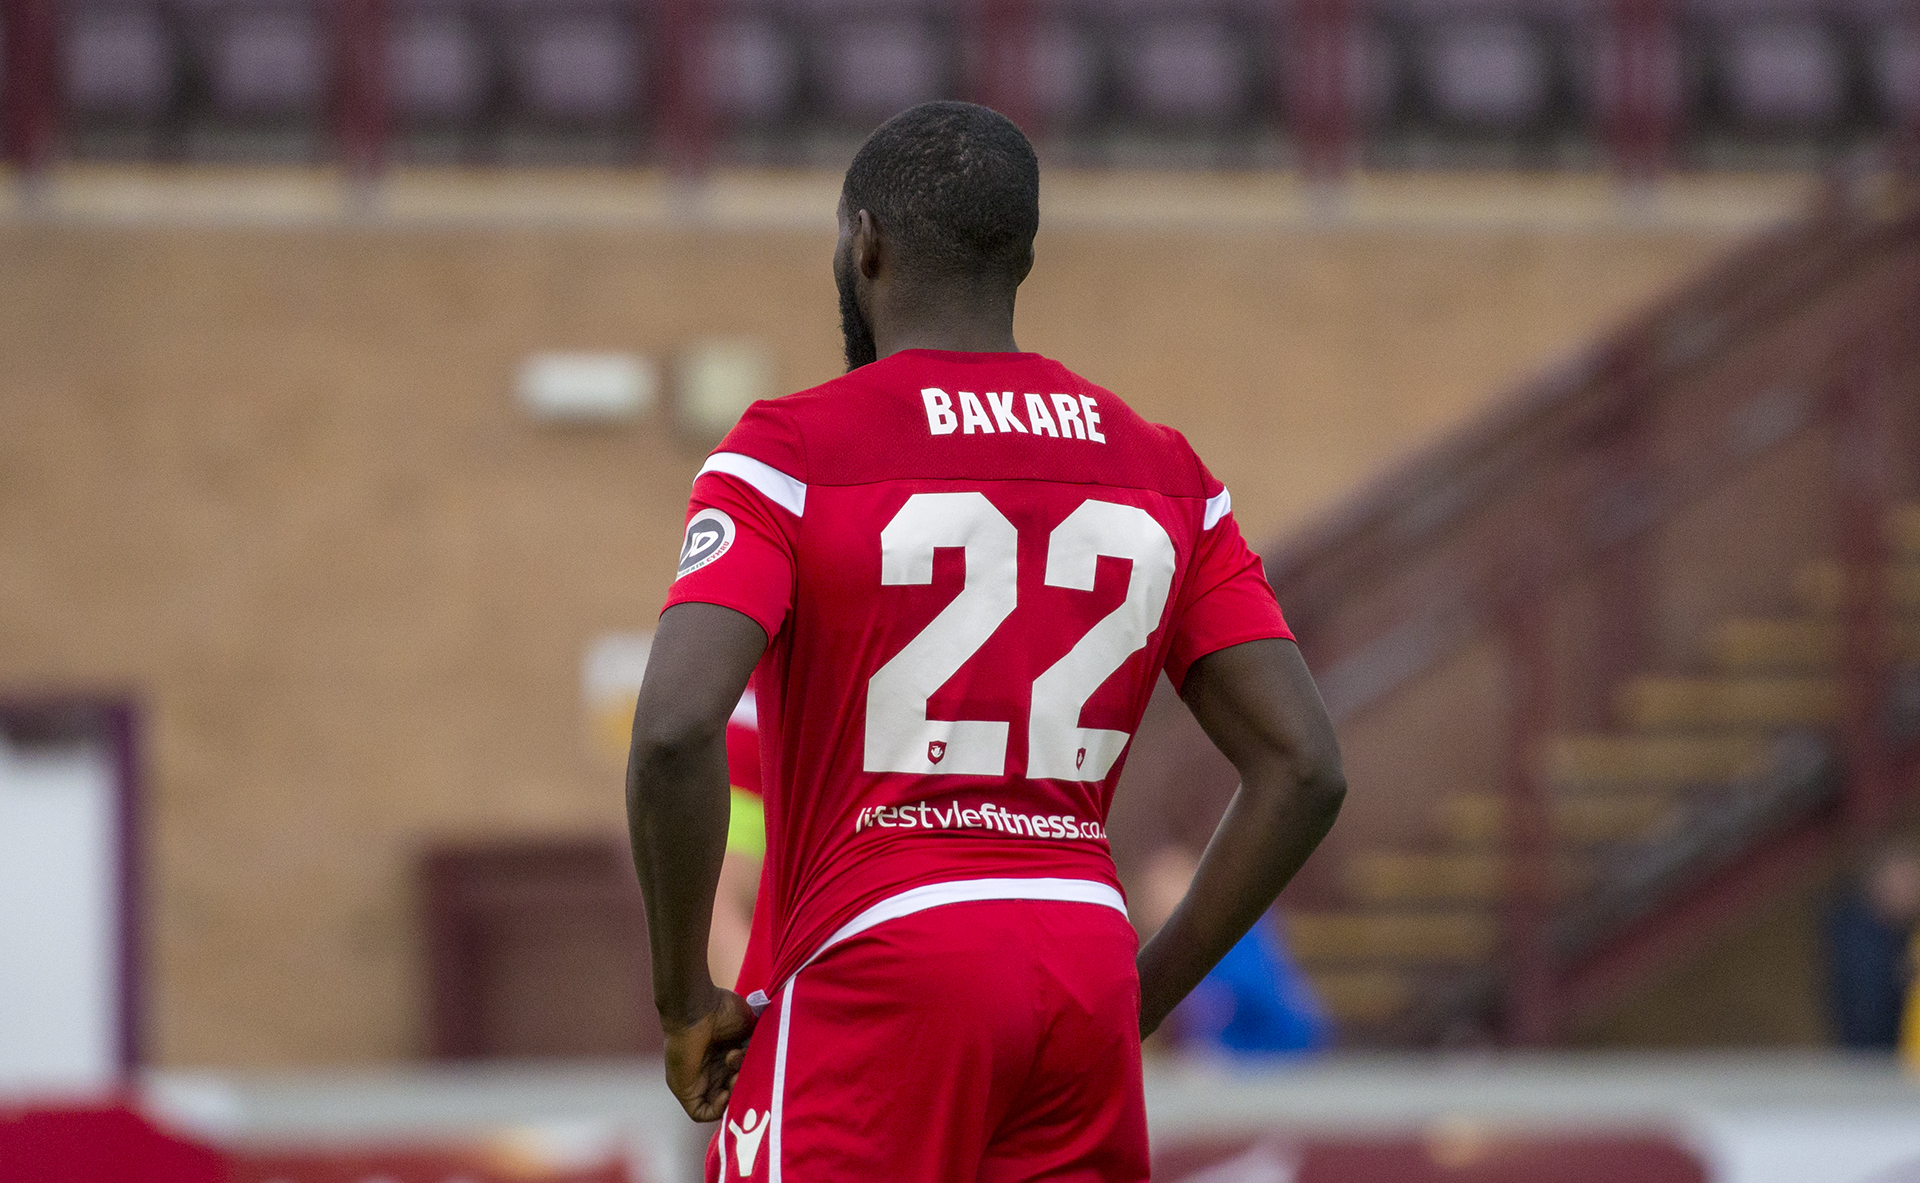 Michael Bakare has signed a new deal at Connah's Quay Nomads until 2020